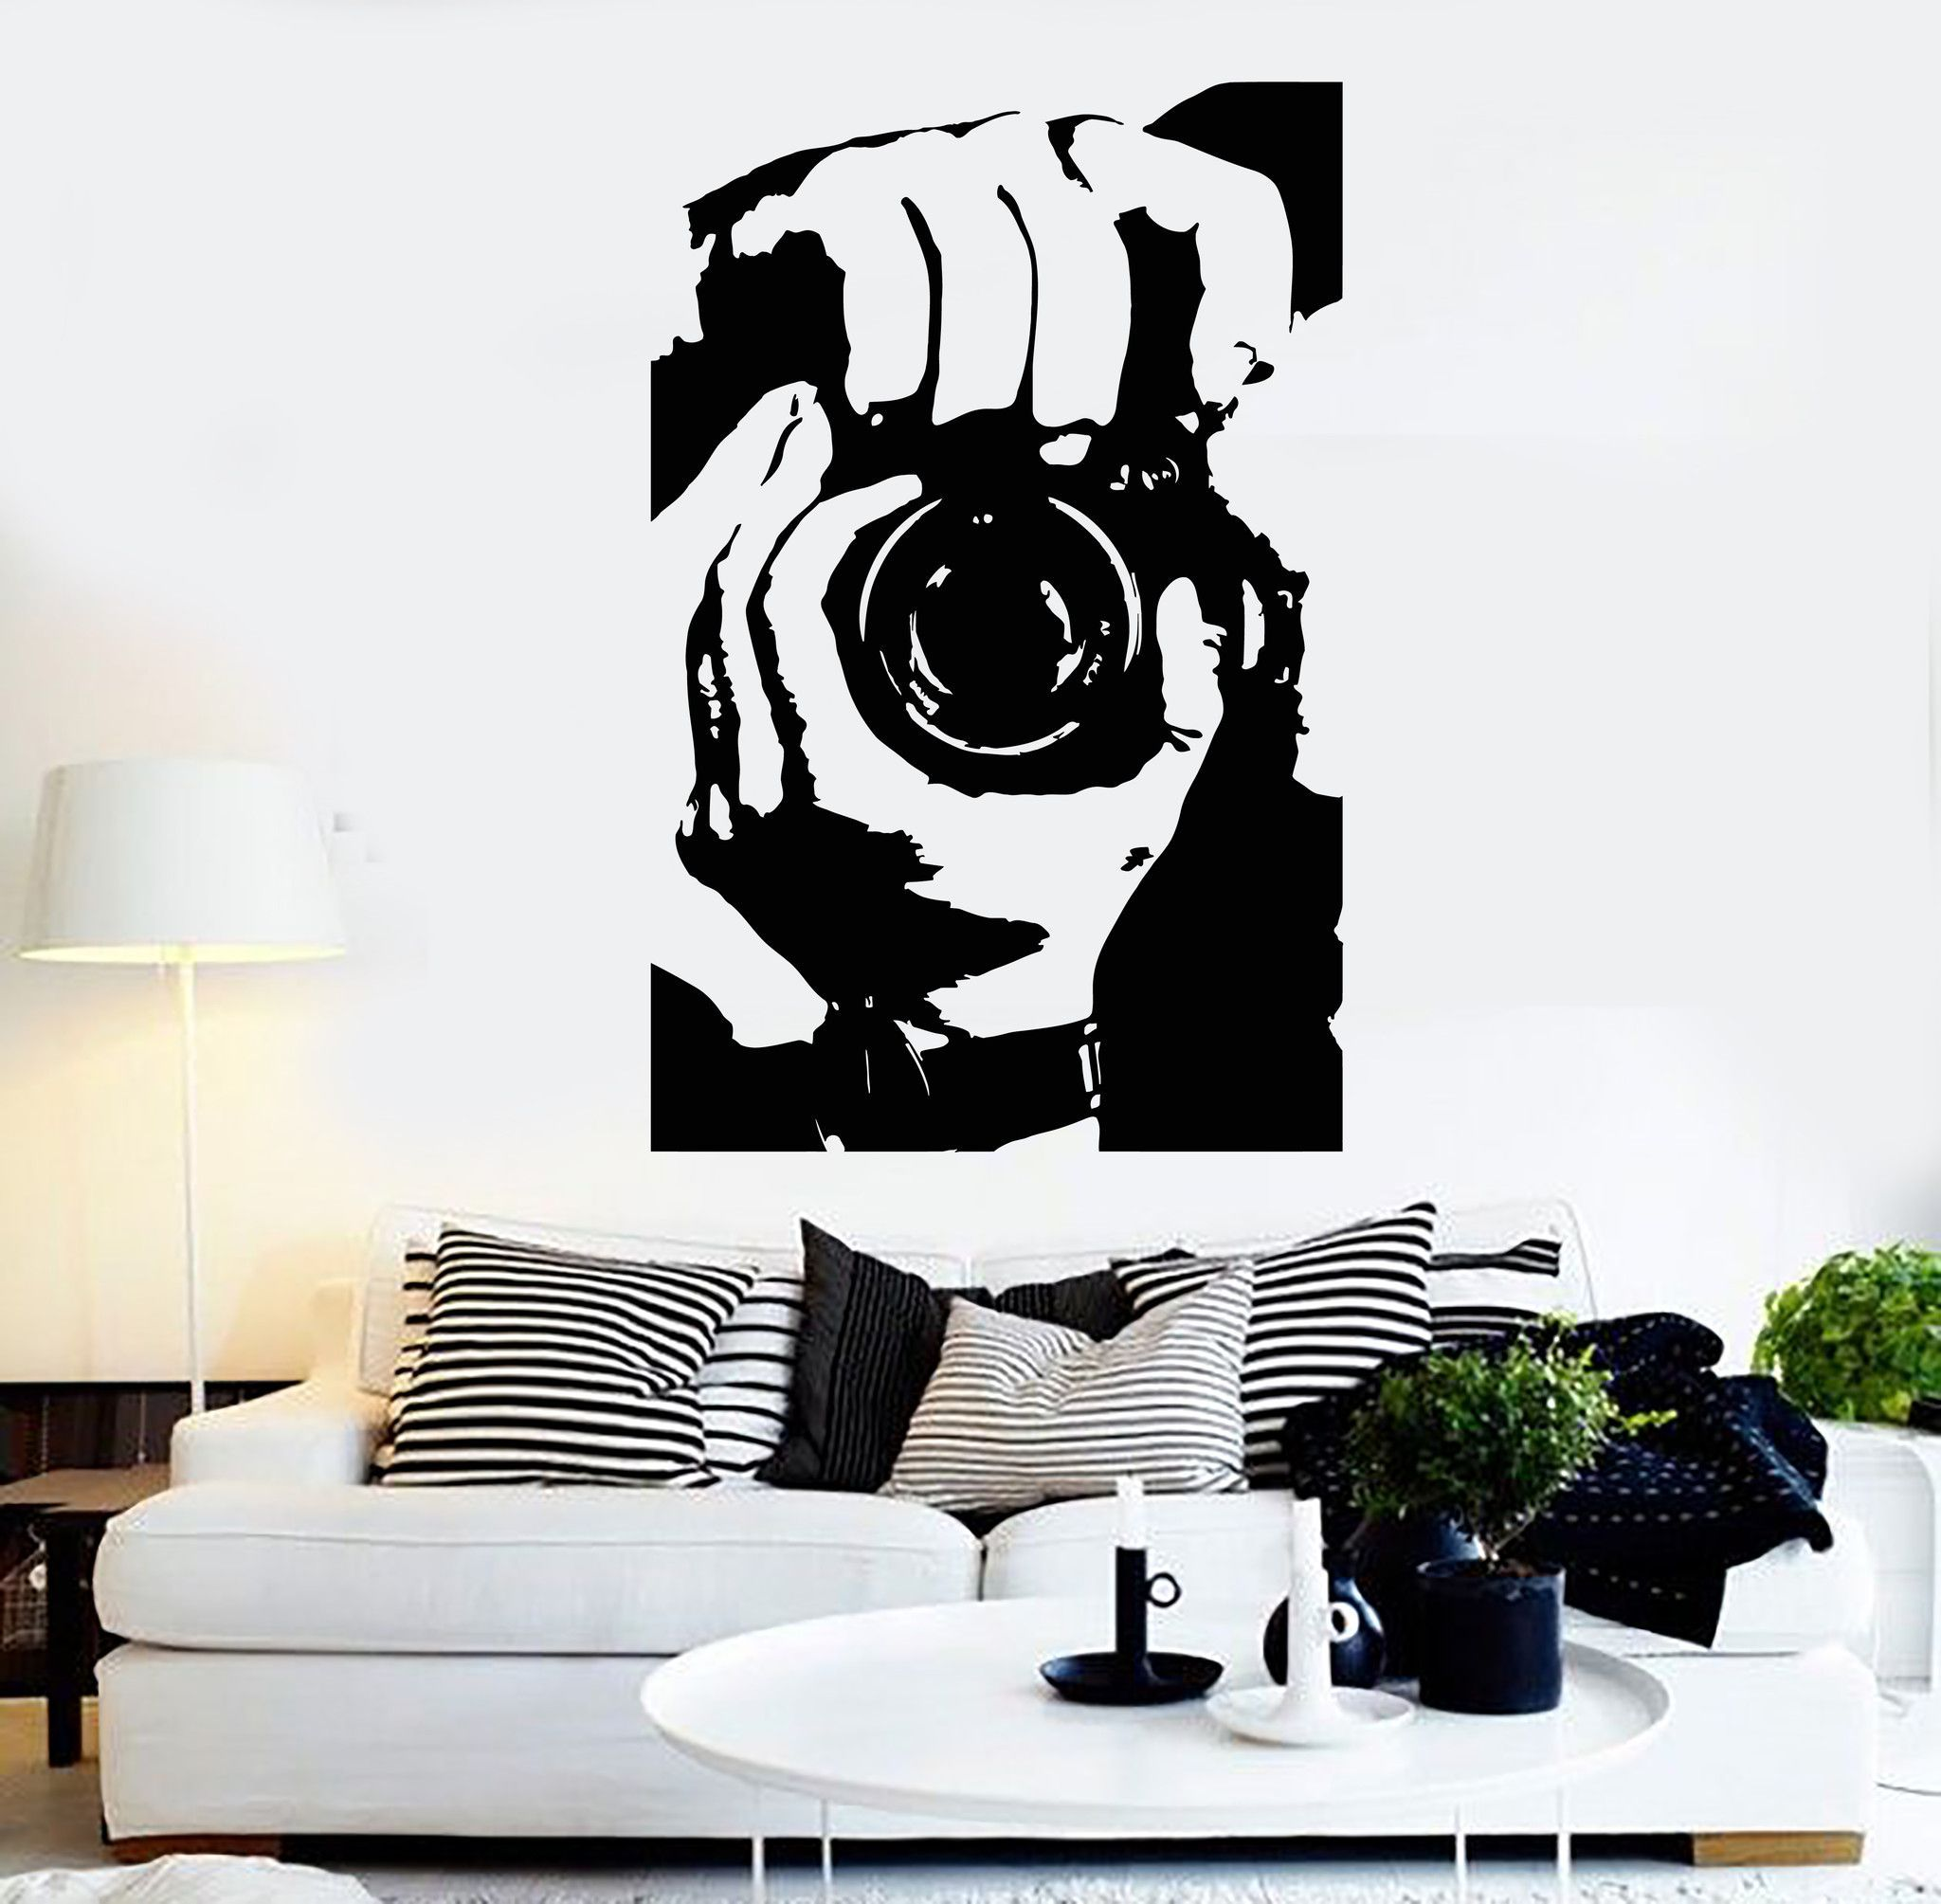 Vinyl Wall Decal Photographer Photo Studio Camera Stickers Mural